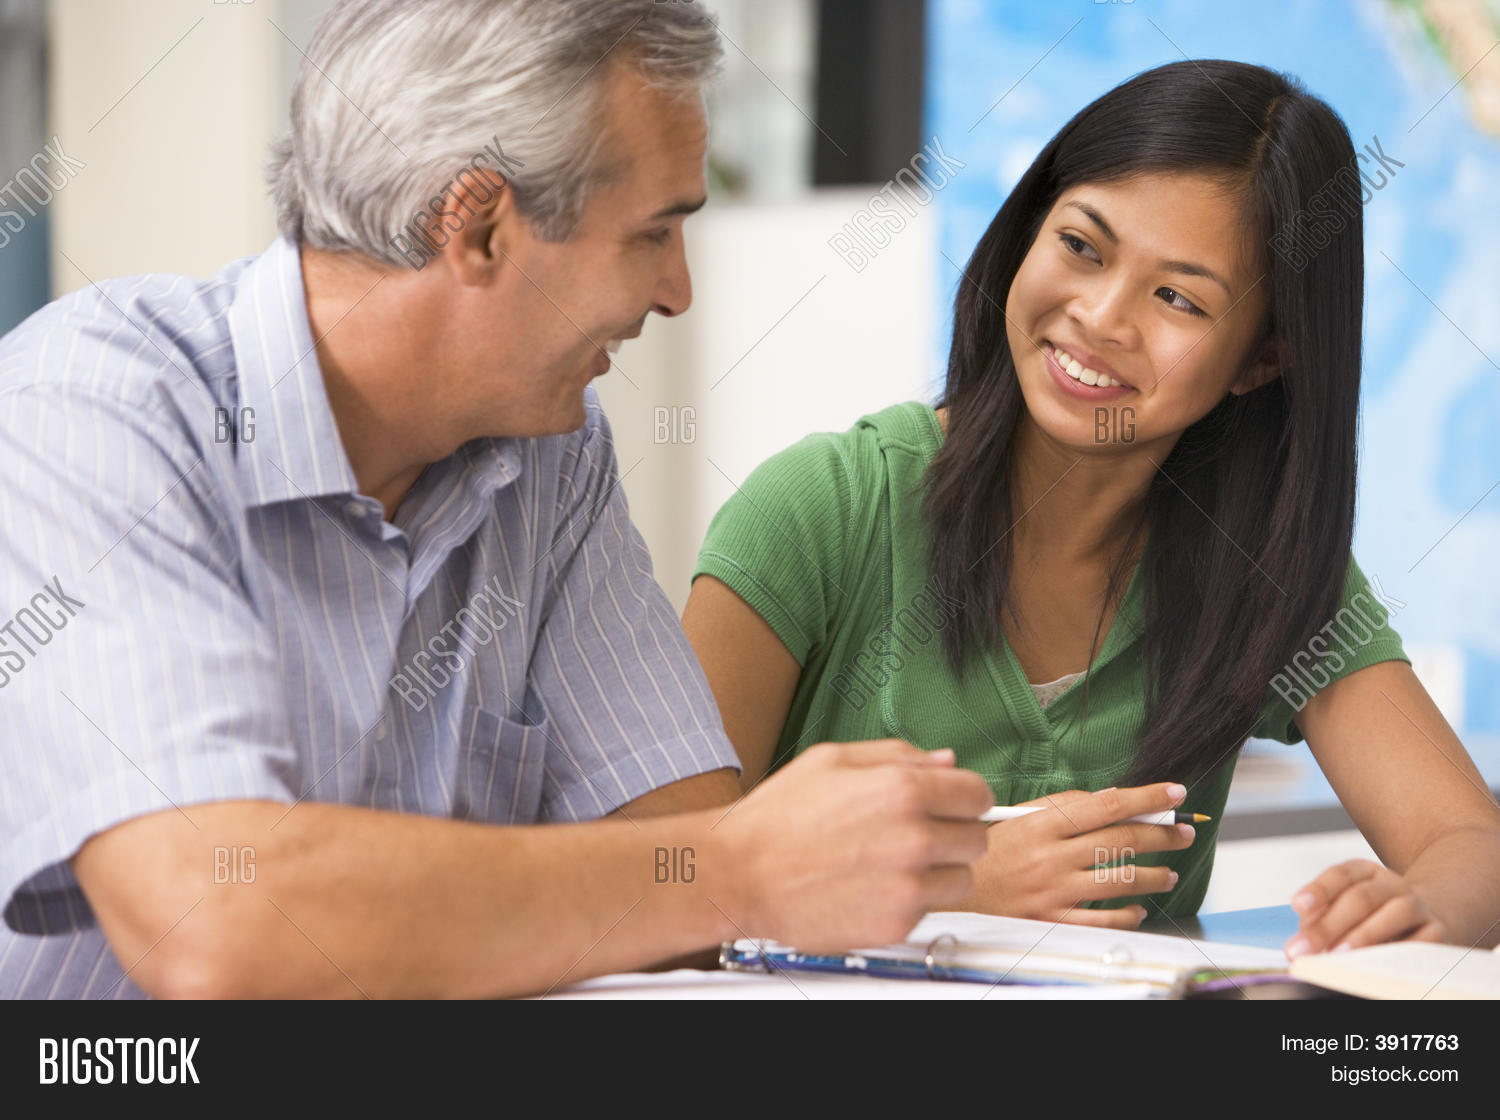 Teacher Giving Personal Instruction Image Amp Photo